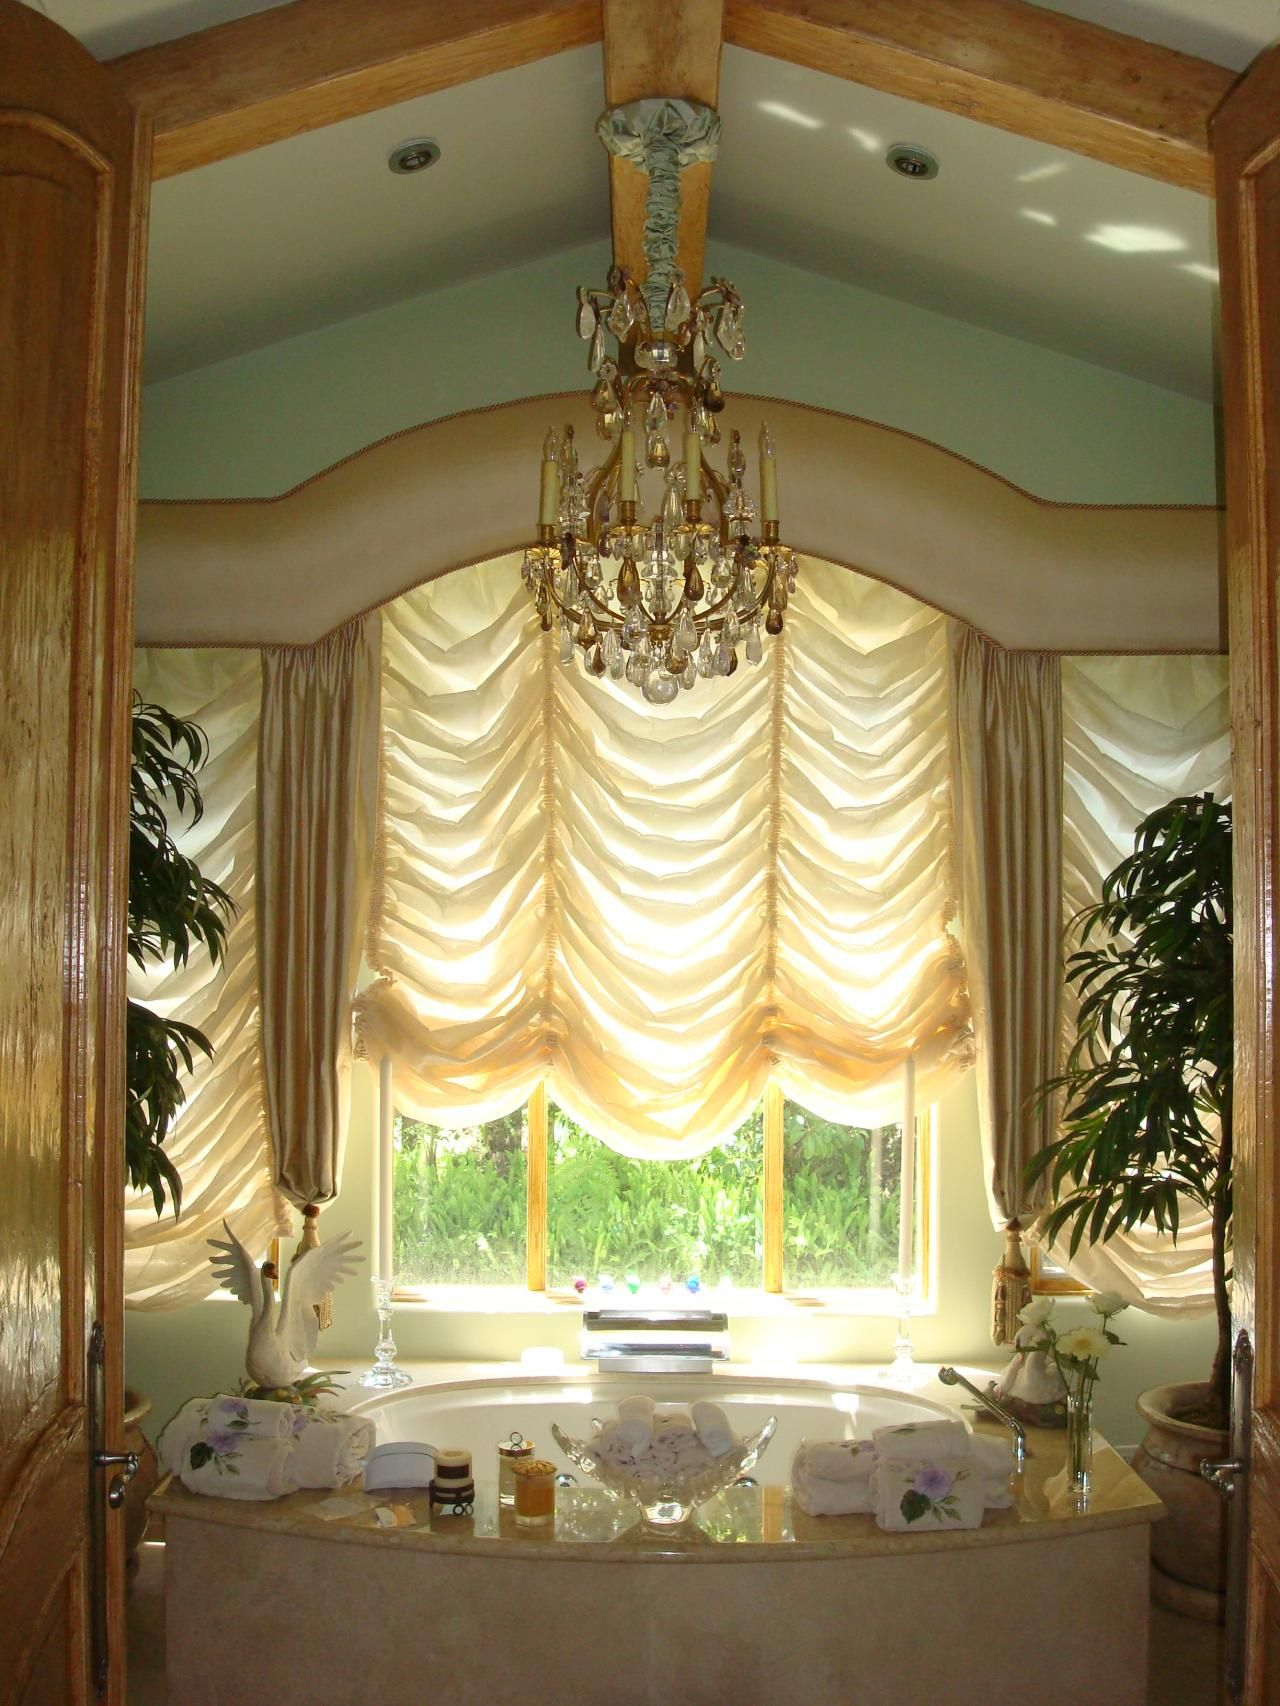 Luxury bathroom curtains - Decorations Beautiful Curtains Pictures For Cool Room Decoration Exciting Yellow Ruffle Curtain Window Panel With Luxury White Oval Bathtub And Chic